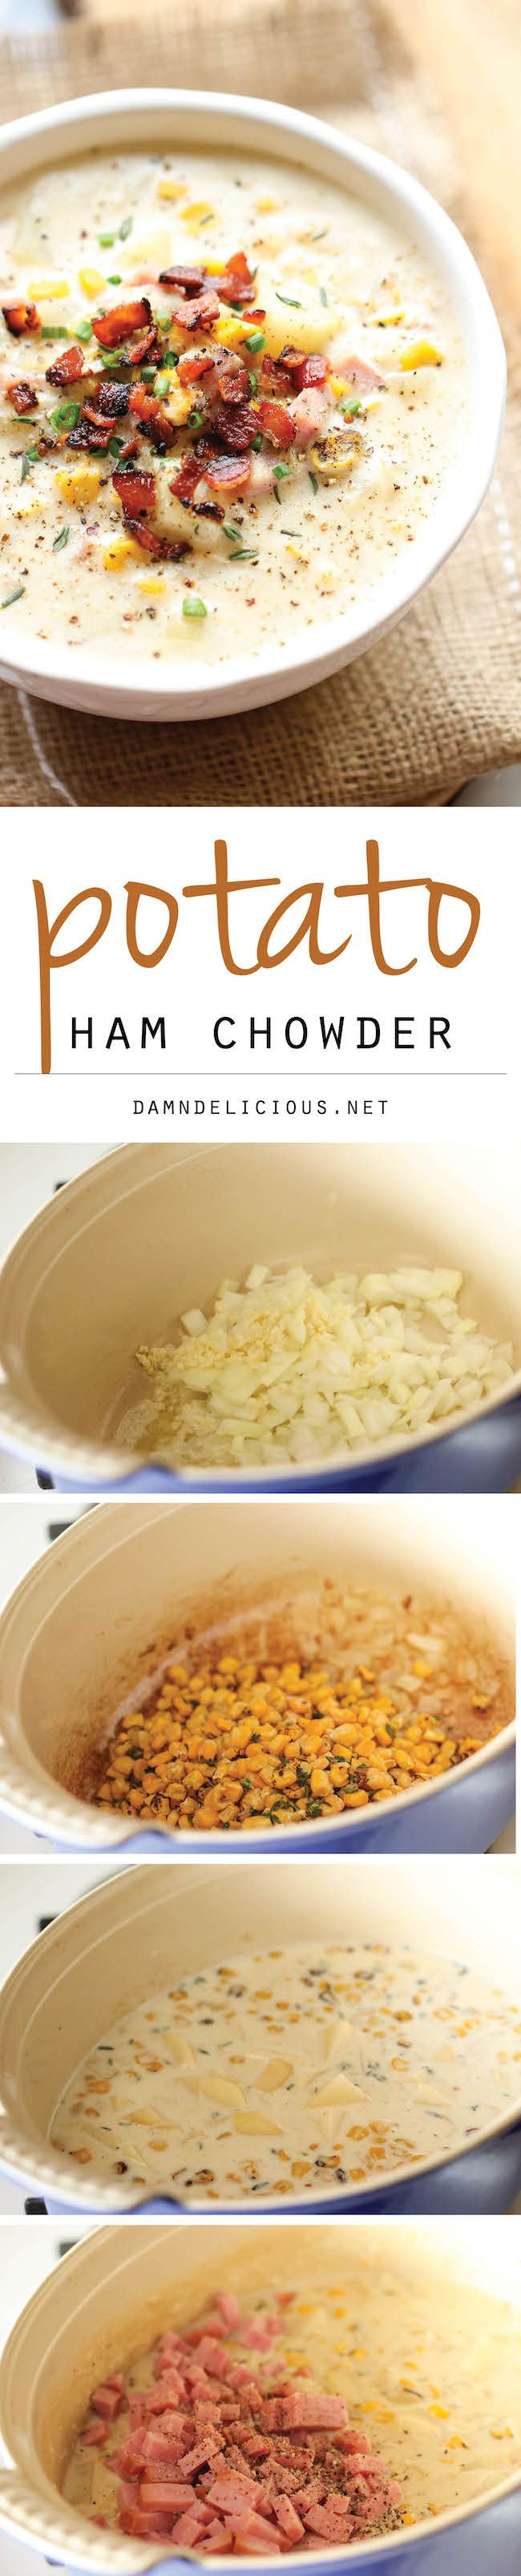 Potato Ham Chowder. Delicious!! And a great way to use up leftover ham (like from Easter!) The only thing I changed was that I used frozen diced hash browns instead of the russet potatoes. It worked great and was a huge timesaver!